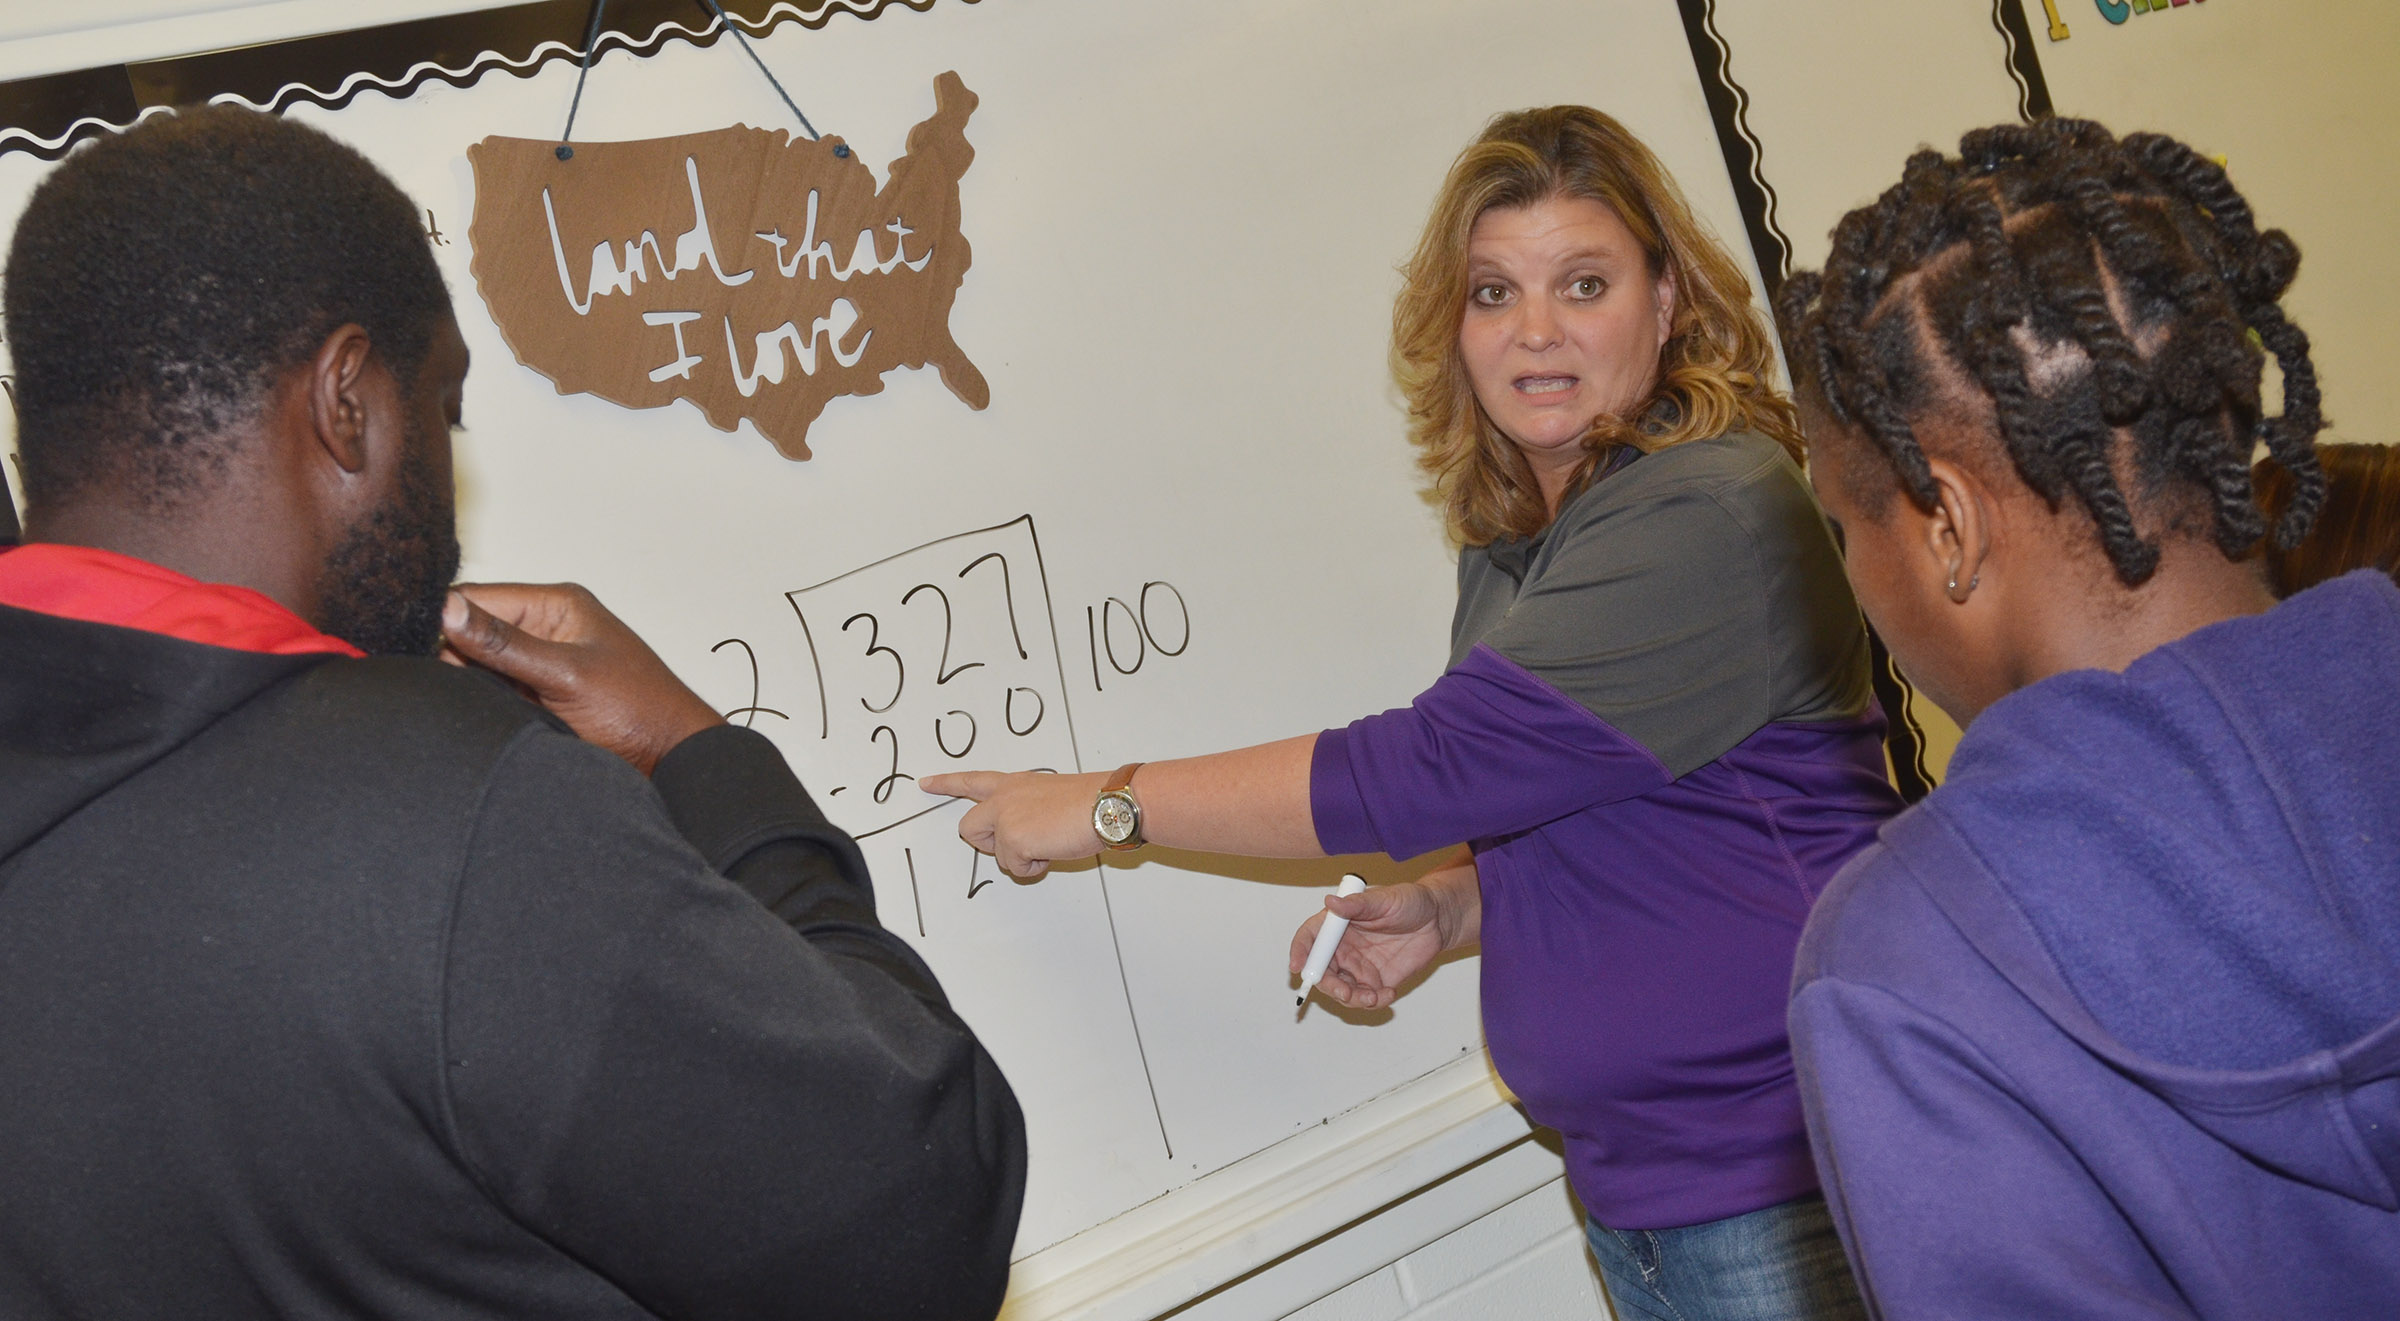 CES fifth-grade teacher Tammy Hash talks to Ta'Zaria Owens and her father Travis about a math concept.